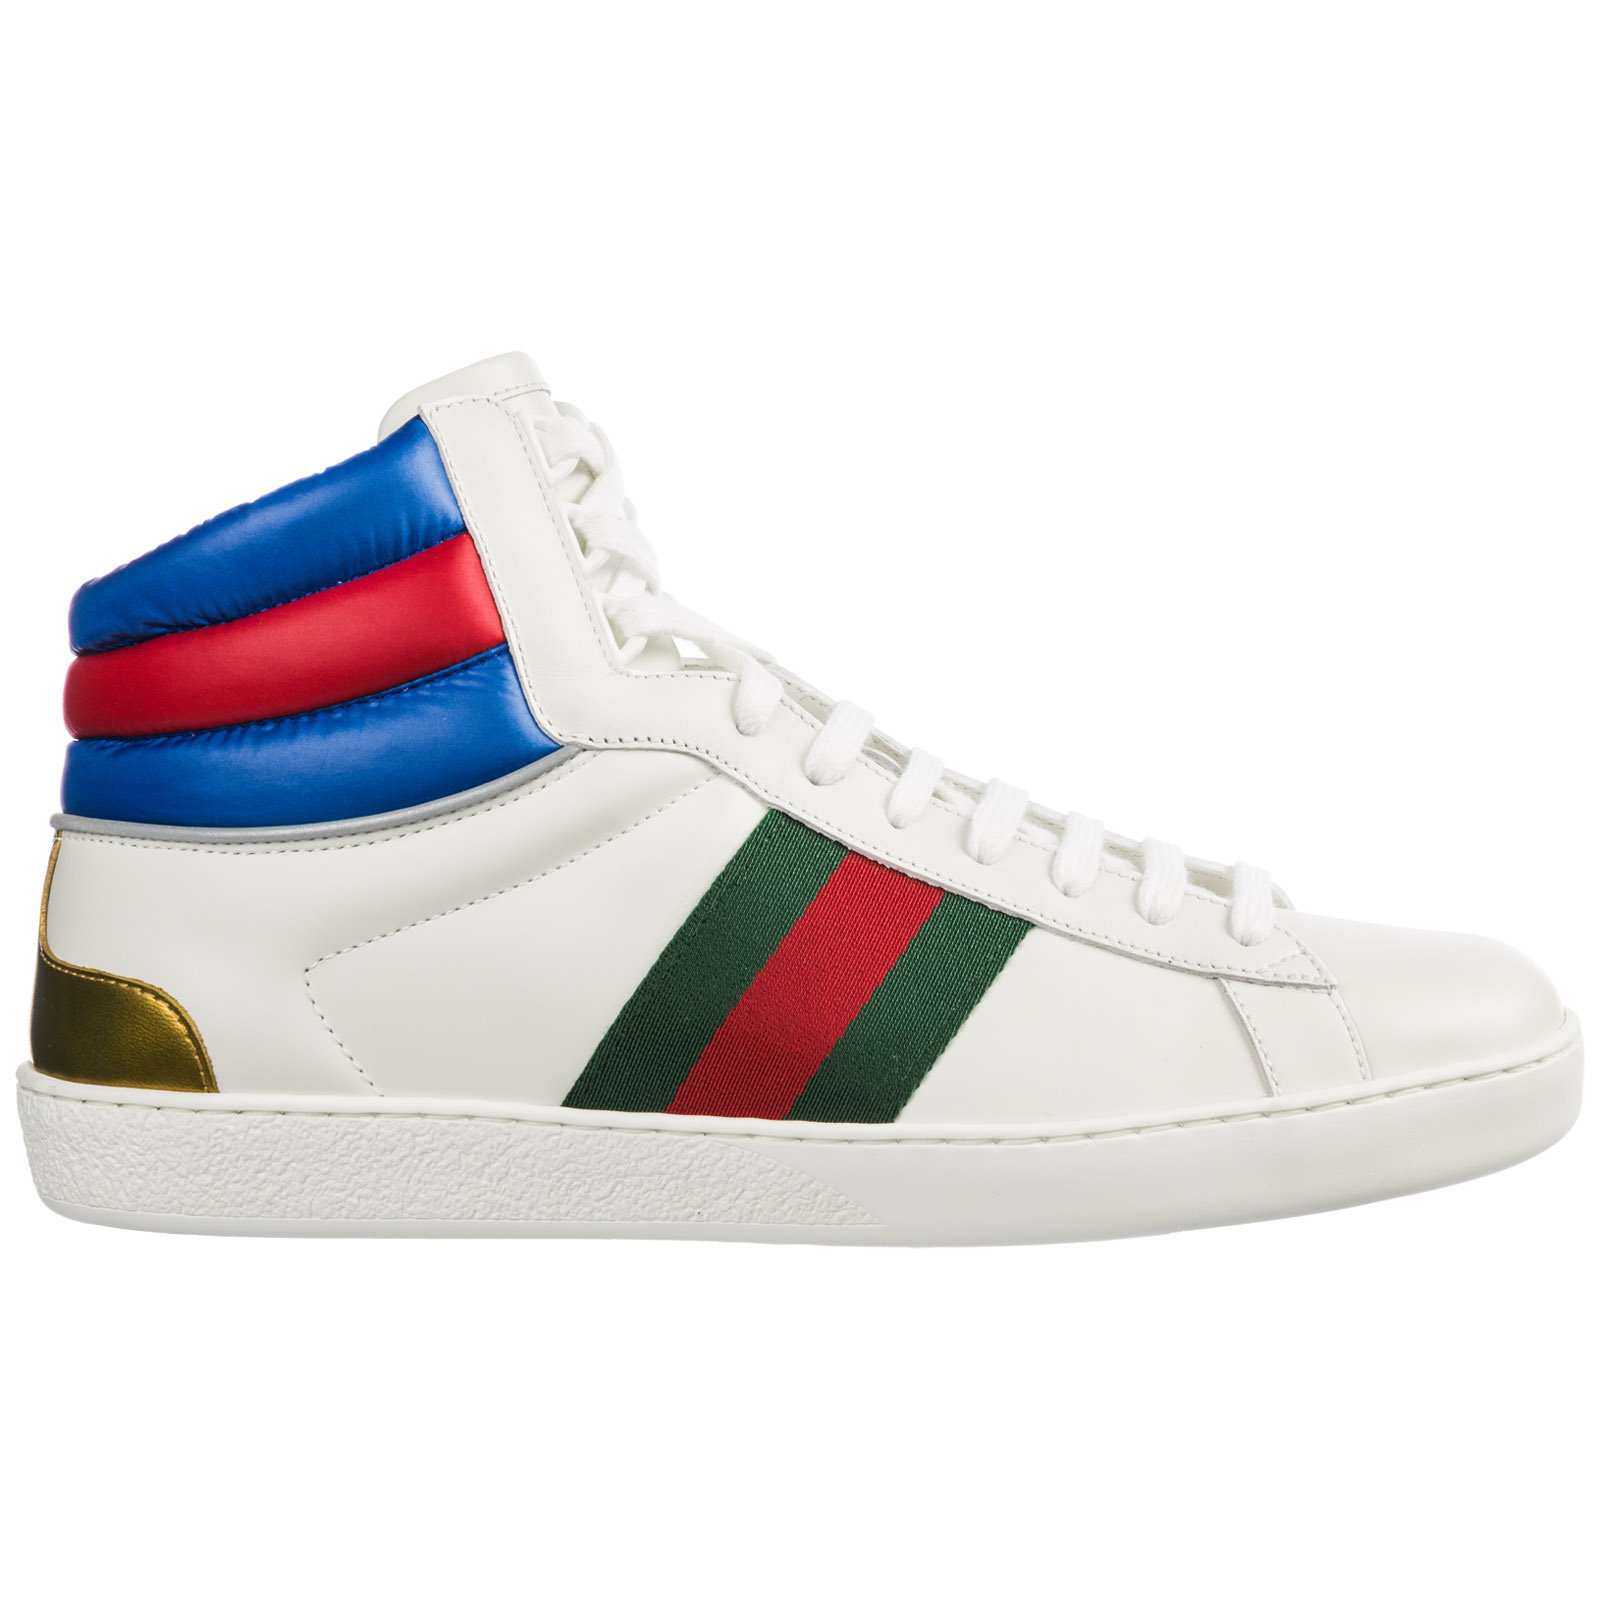 e5cda3879 Gucci Men's Shoes High Top Leather Trainers Sneakers Ace In White ...